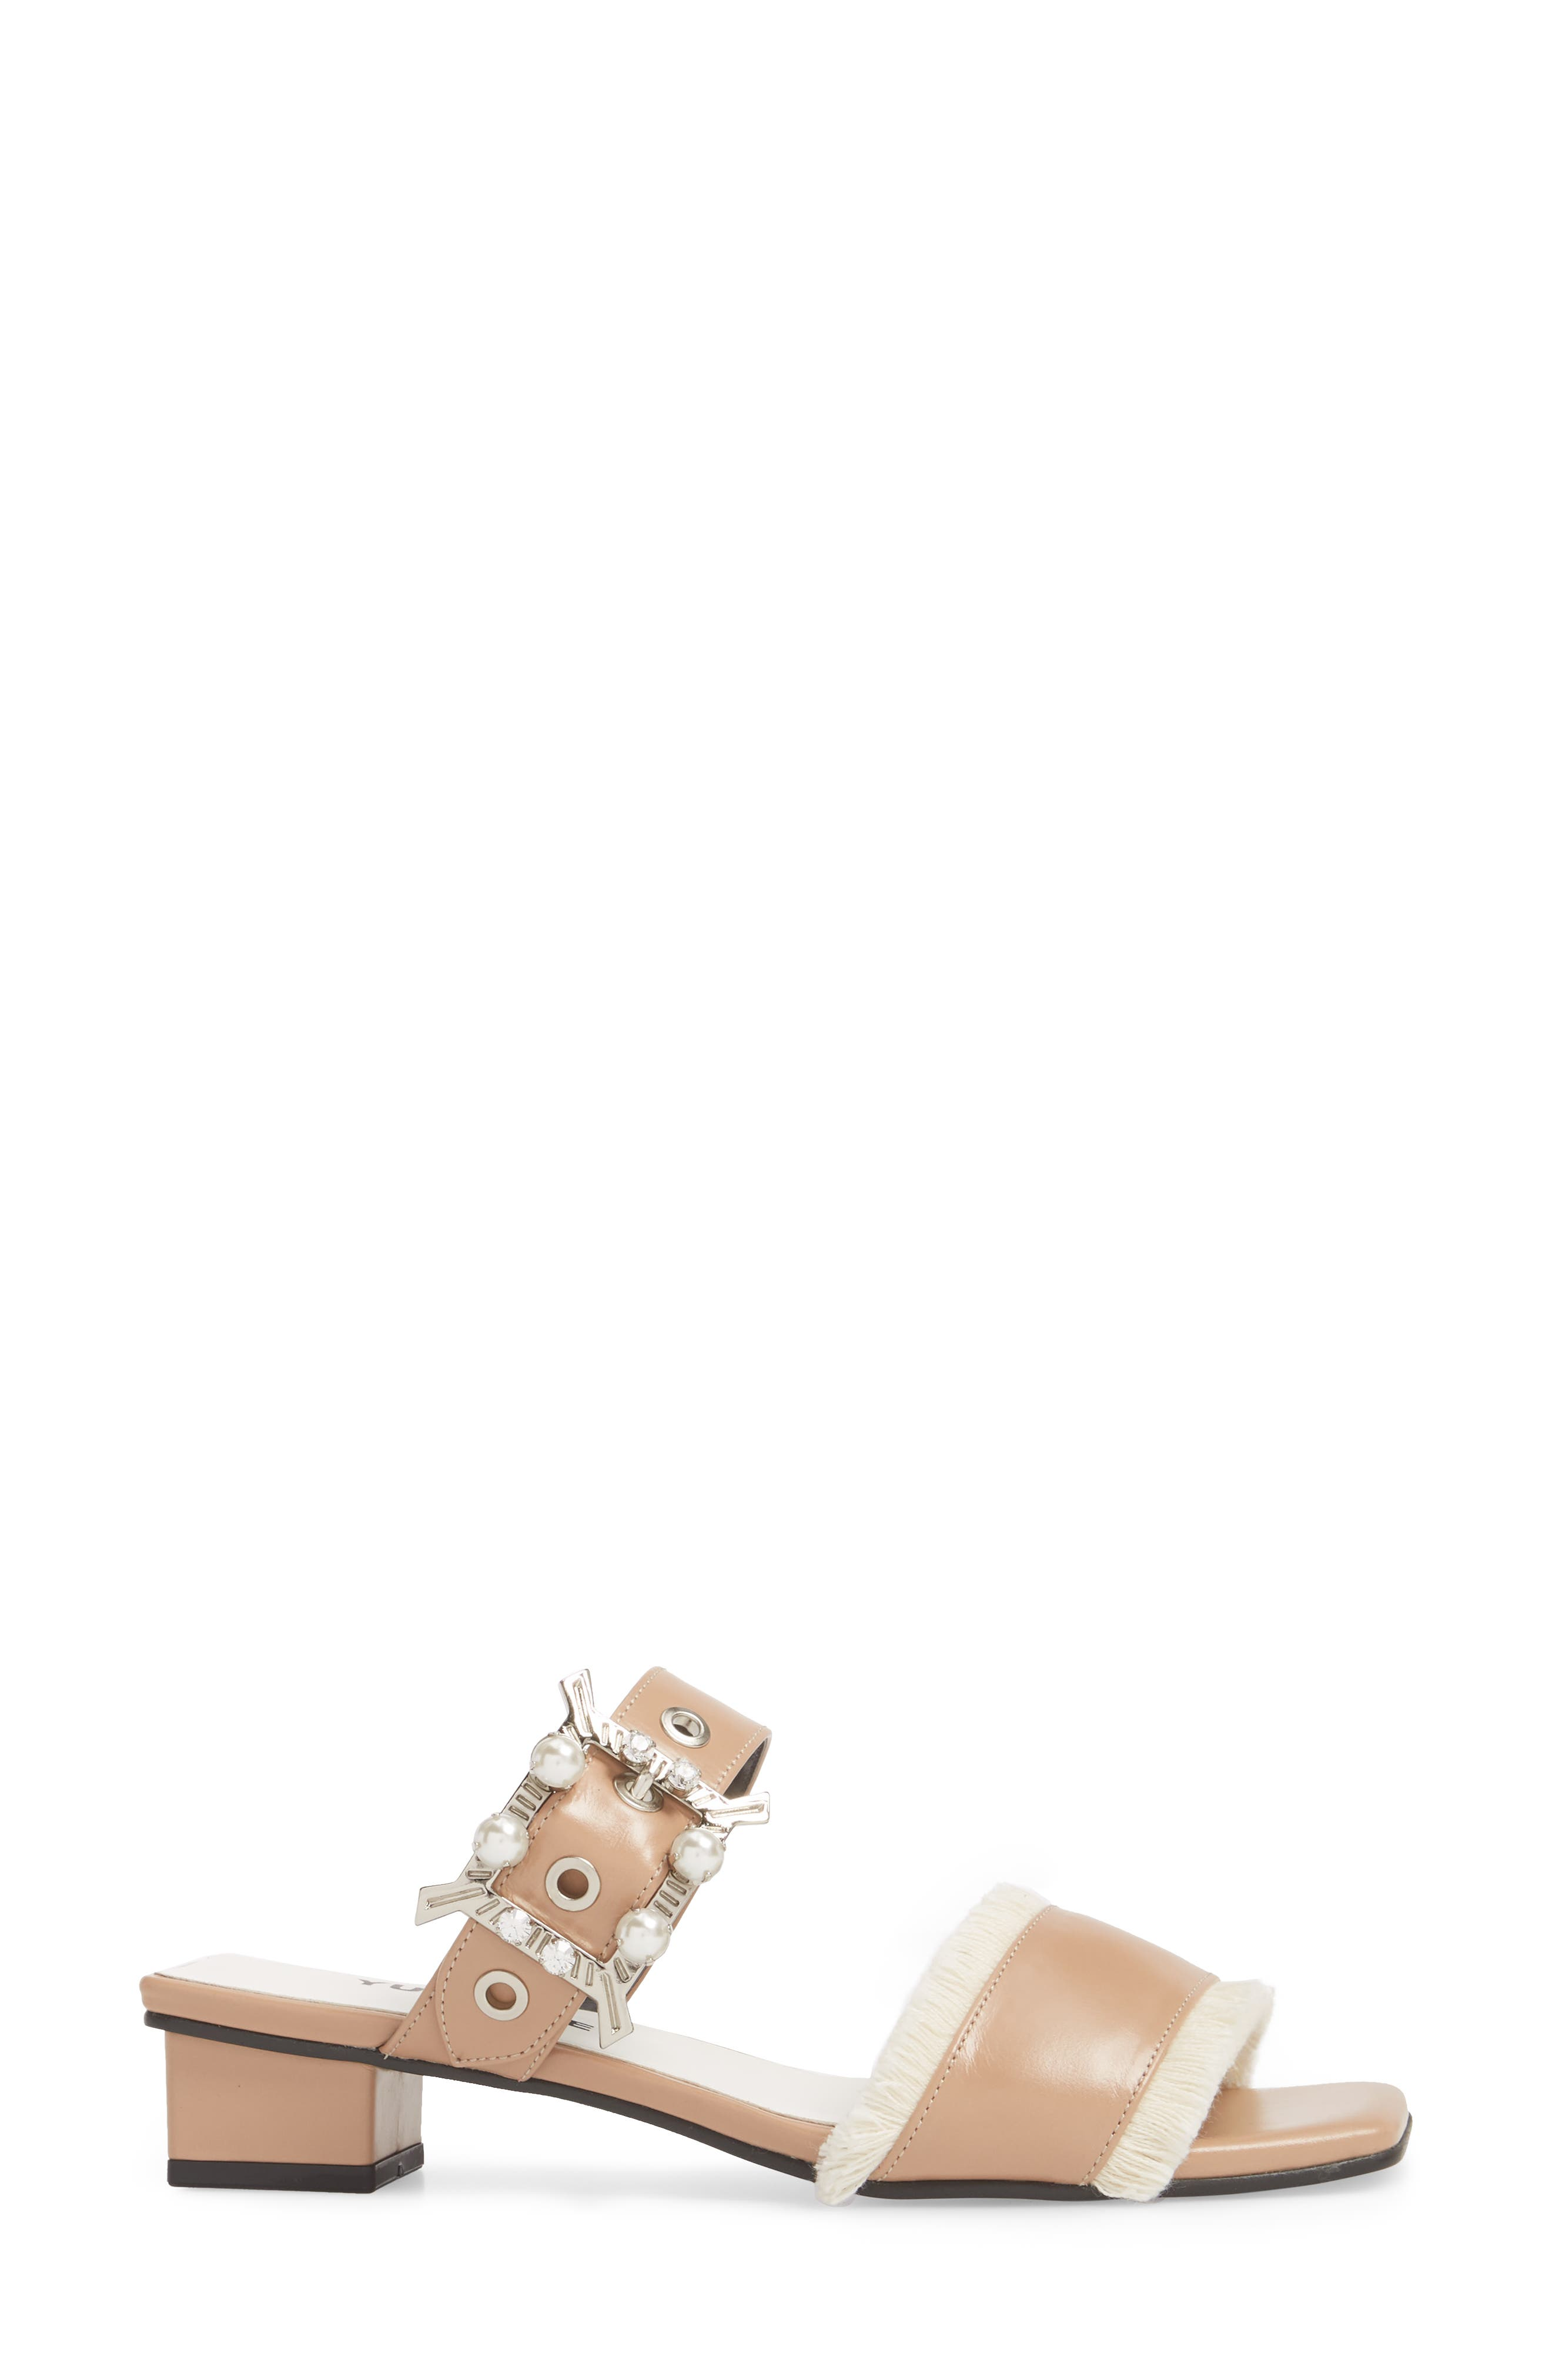 Embellished Slide Sandal,                             Alternate thumbnail 3, color,                             Skin Beige